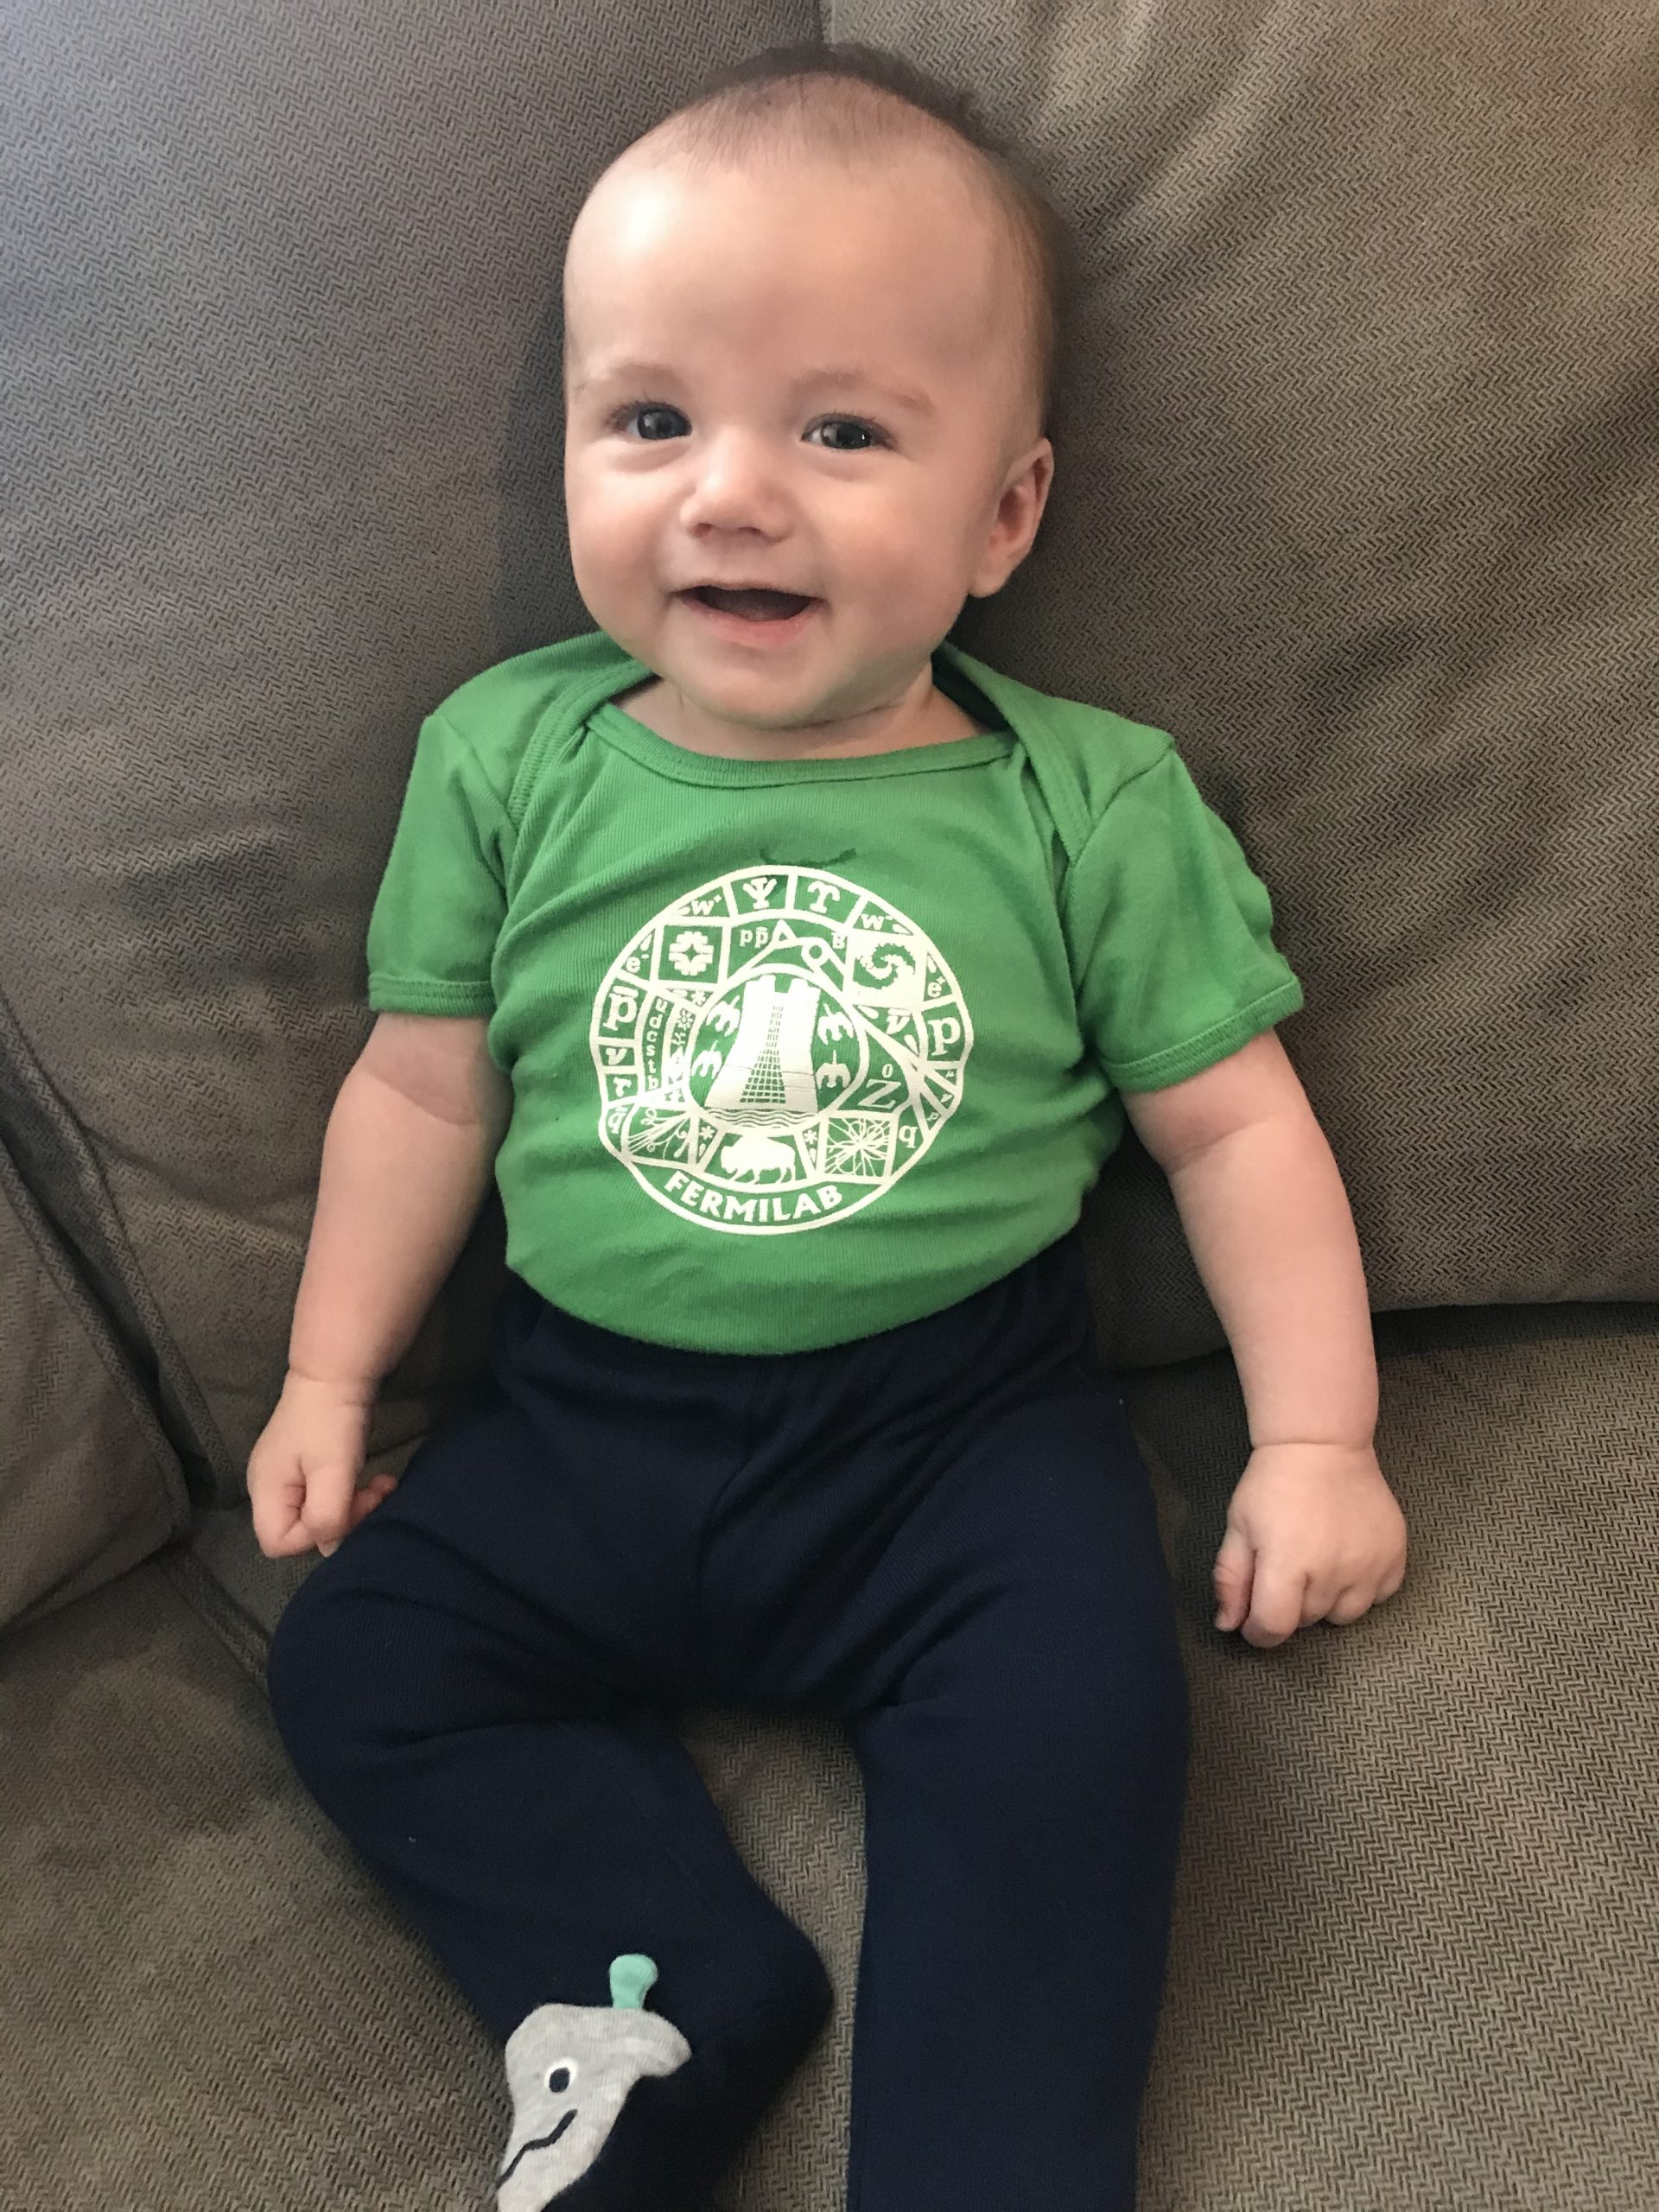 (2/2) Noah's in a green Fermilab onesie. people Photo: Mary Cook